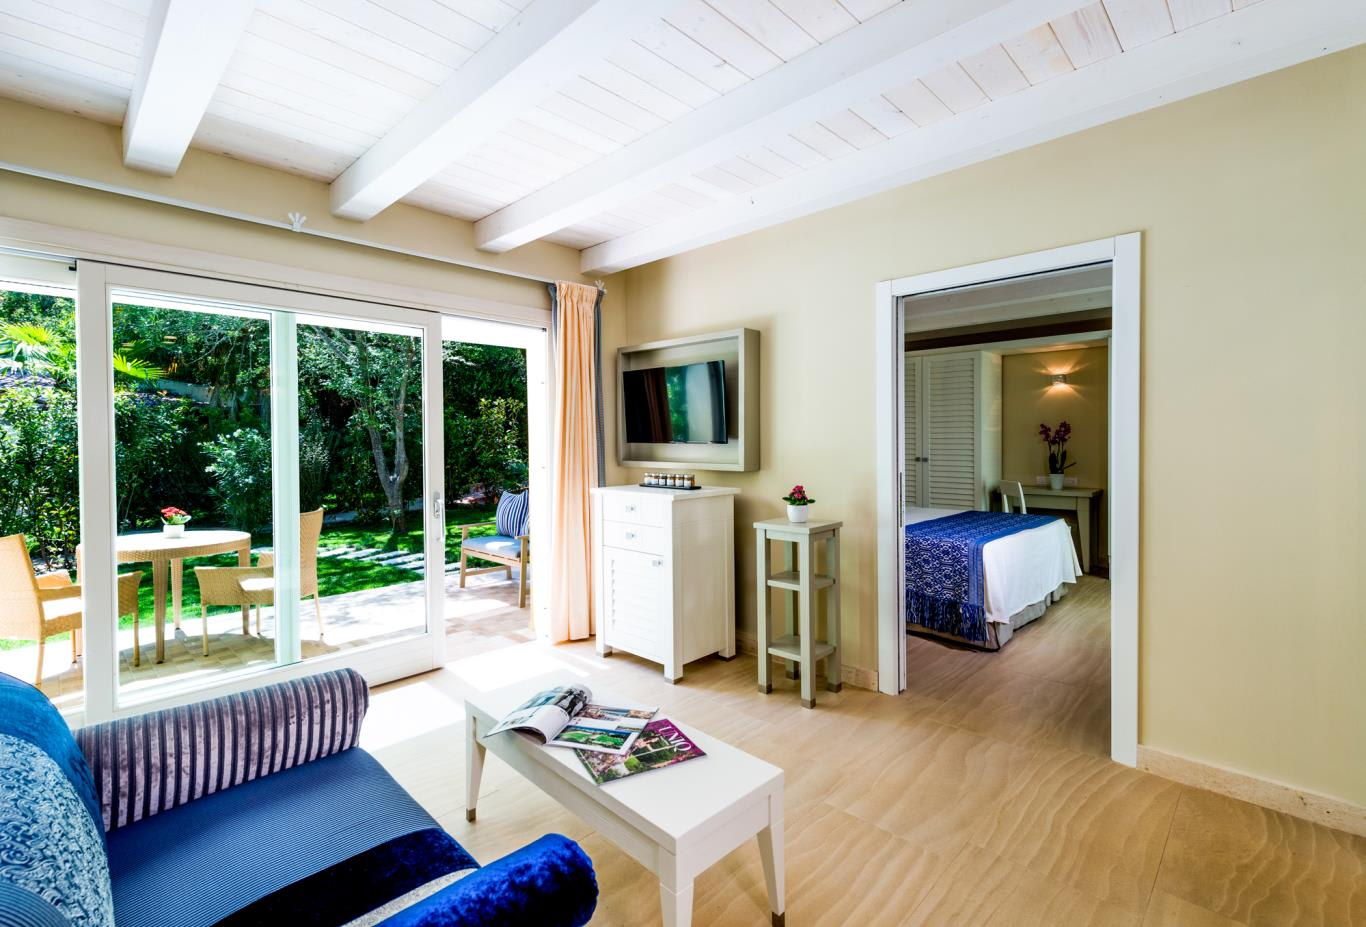 Deluxe Family Bungalow interior